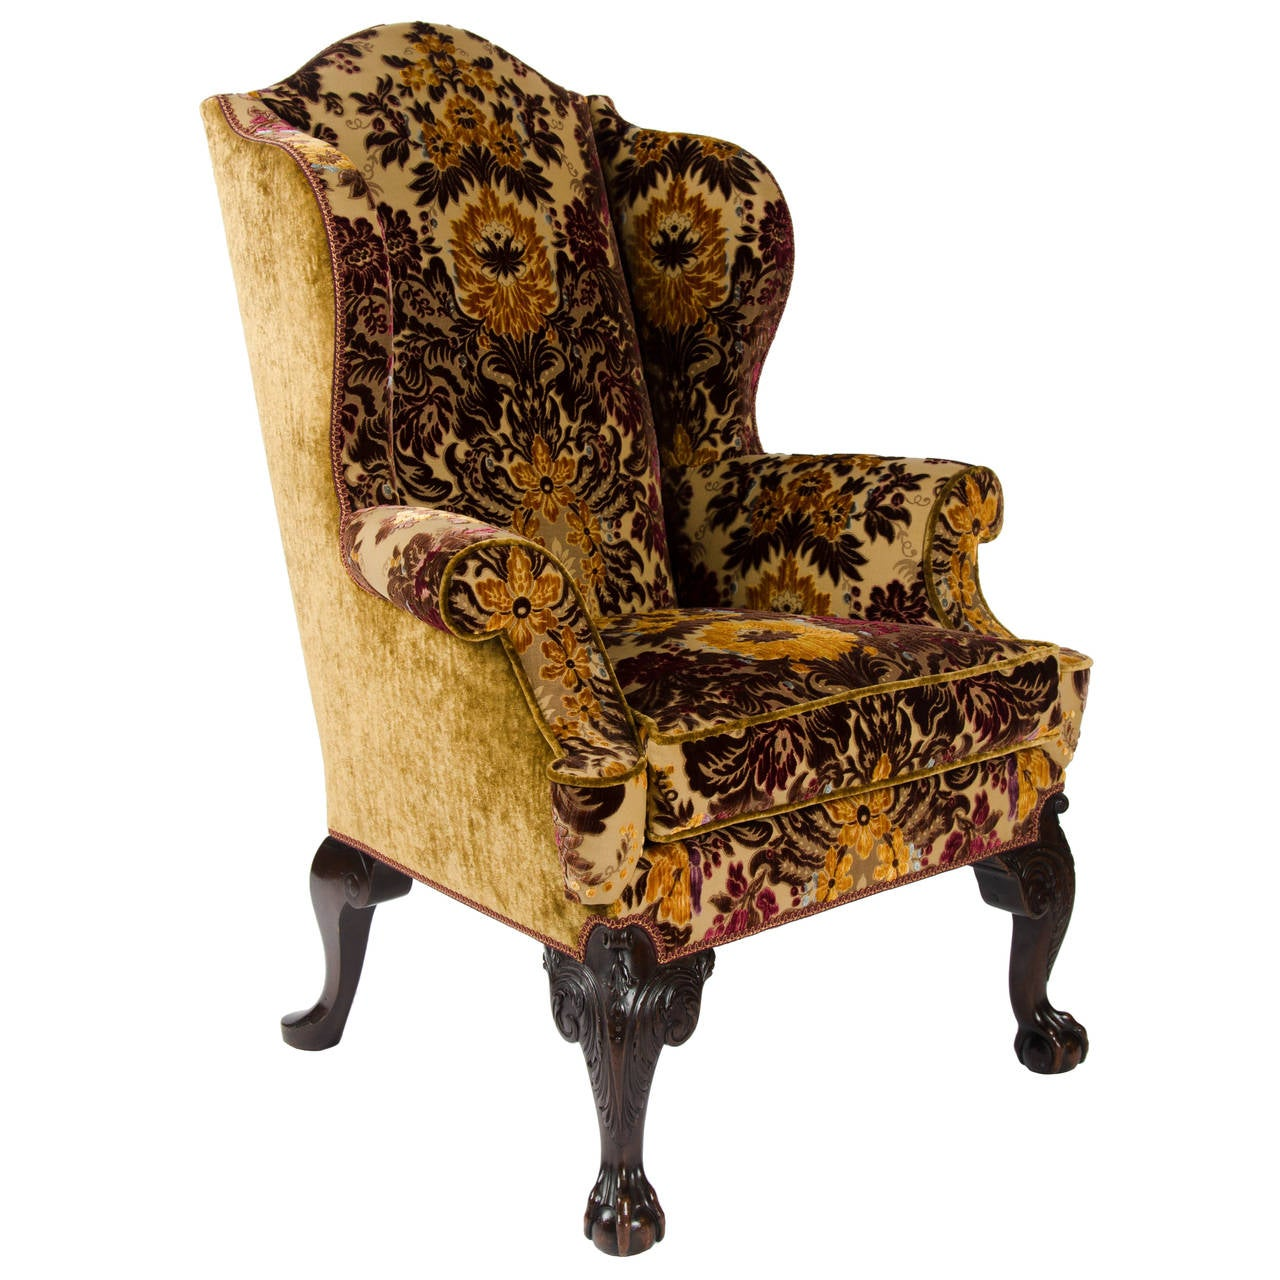 19th Century Mahogany and Beech Wing Chair in the 18th Century Manner